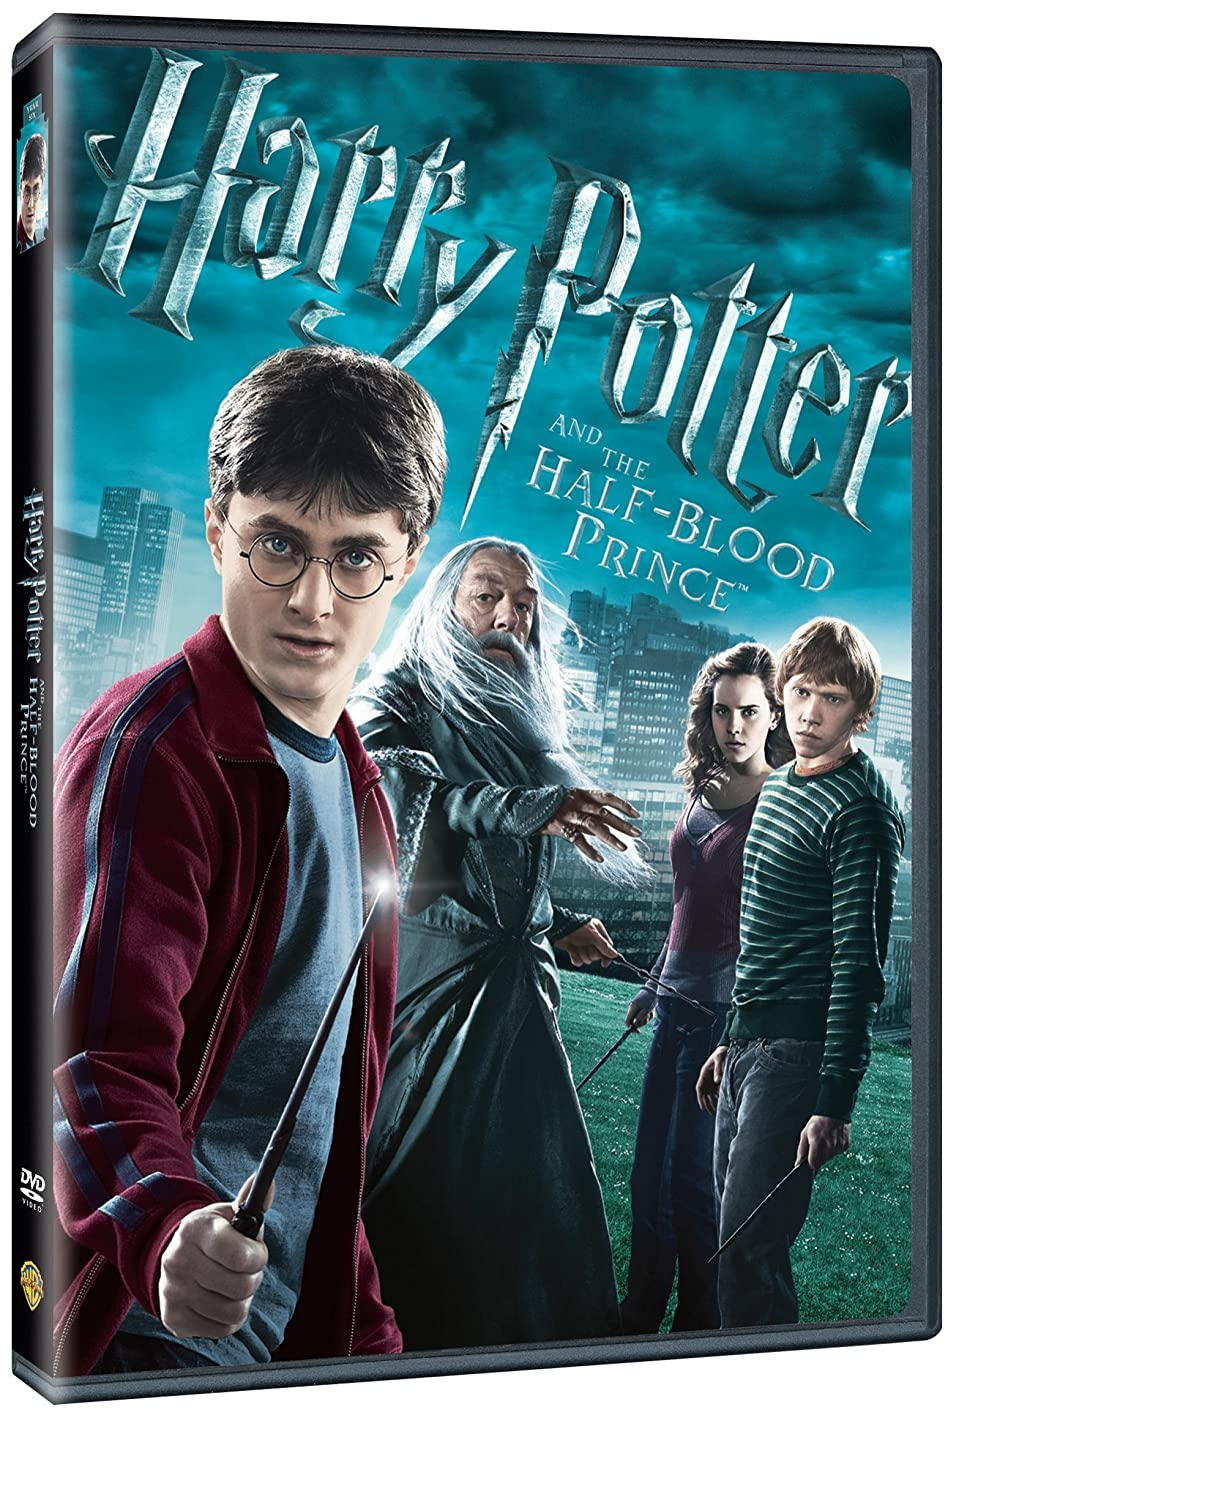 Amazon.com: Harry Potter and the Half-Blood Prince (Widescreen Edition):  Daniel Radcliffe, Rupert Grint, Emma Watson, Jim Broadbent, Robbie  Coltrane, ...